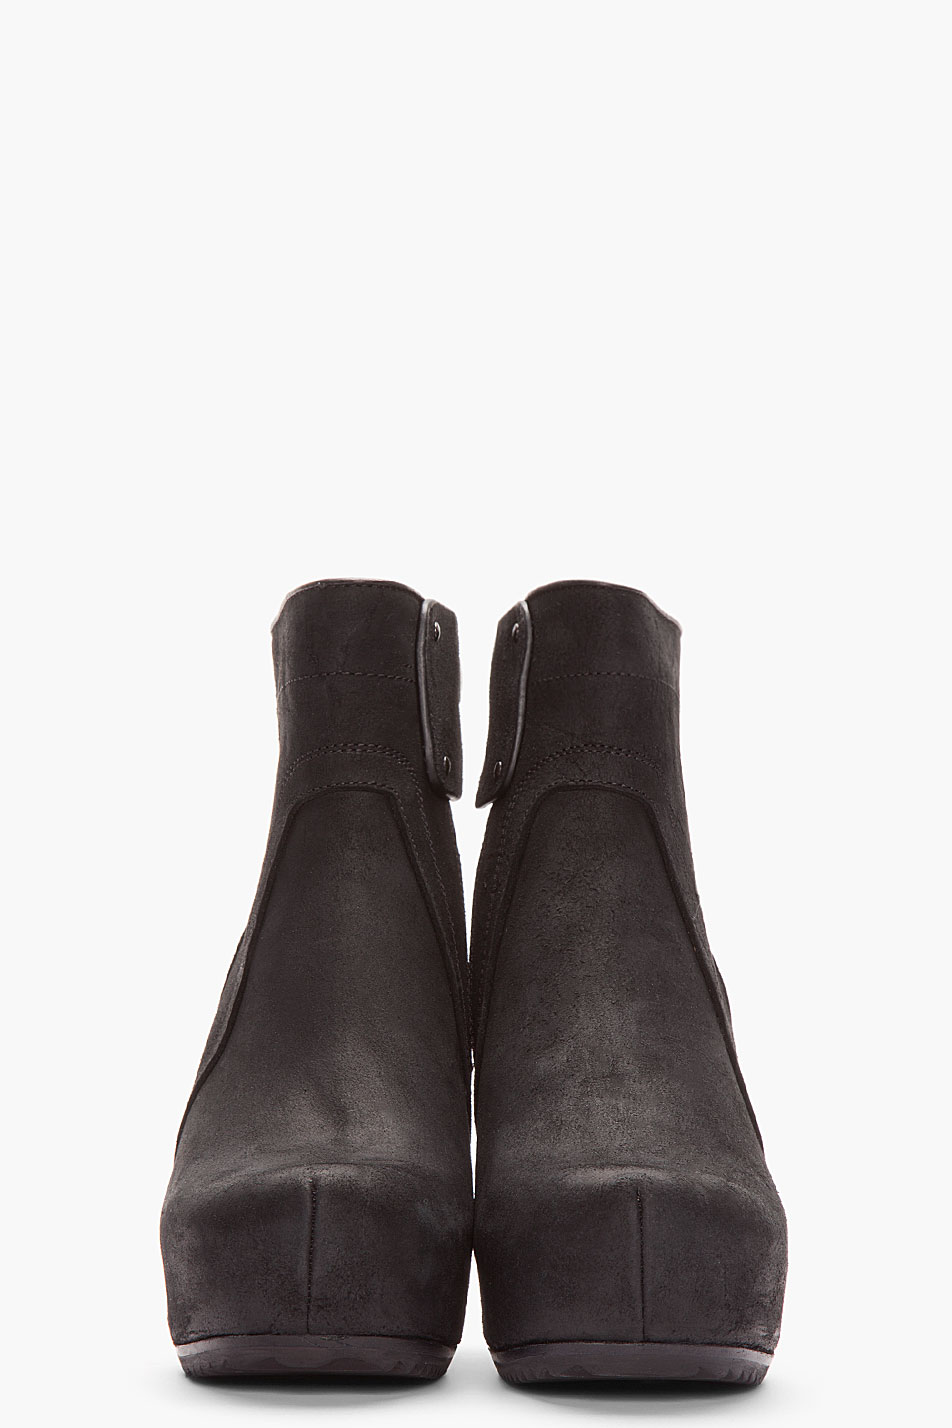 Lyst Rick Owens Black Brushed Suede Wedge Ankle Boots In